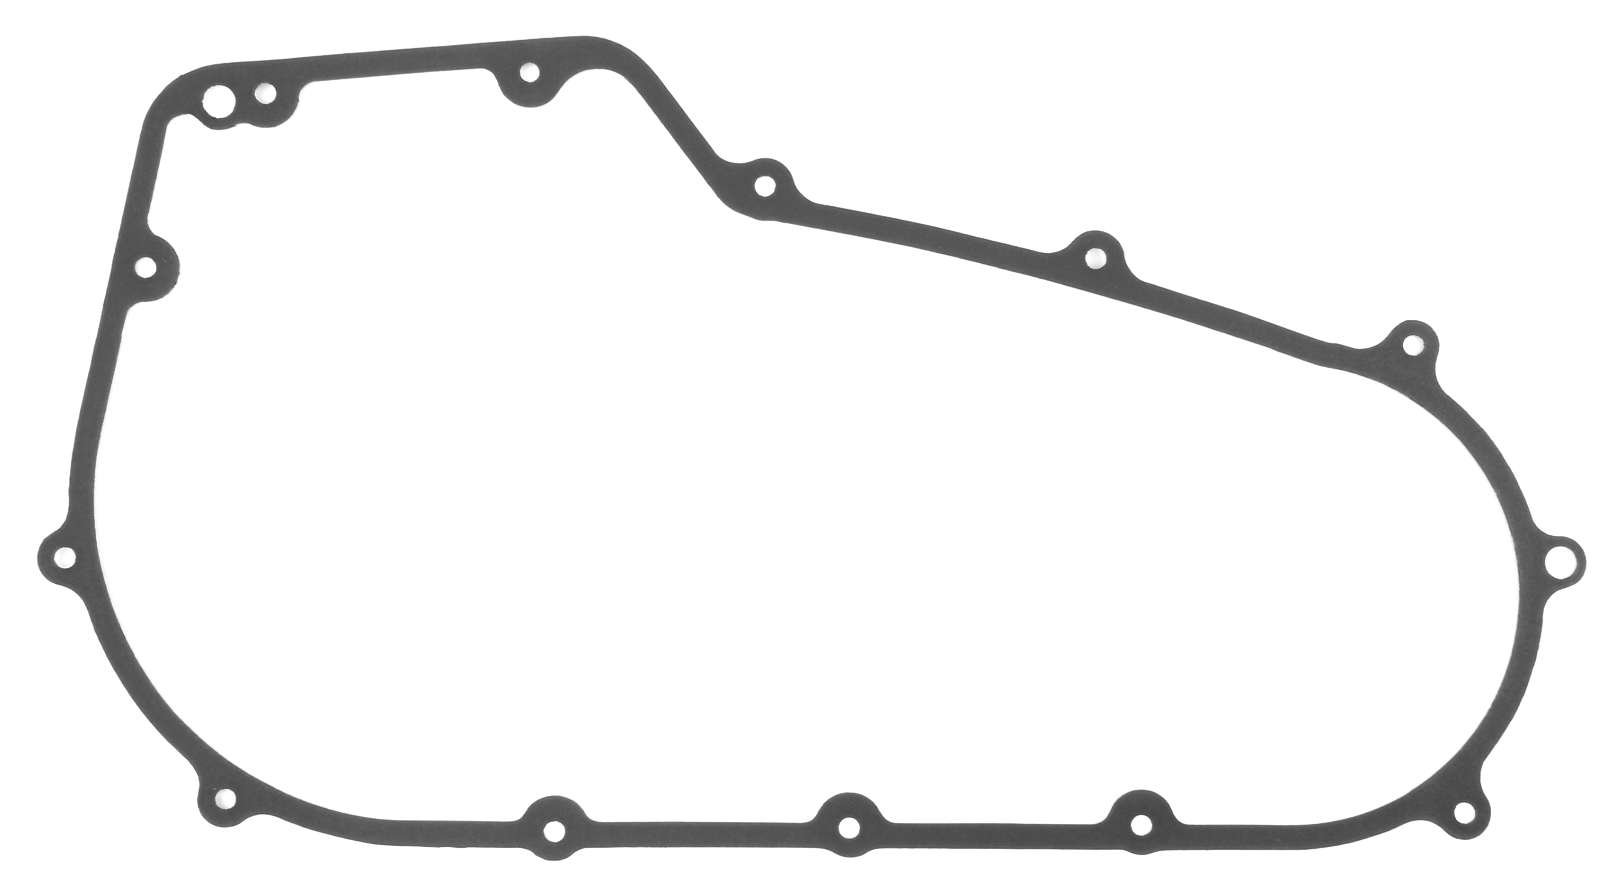 Twin Power Primary Gasket - 5pk. C9145F5TP by Twin Power